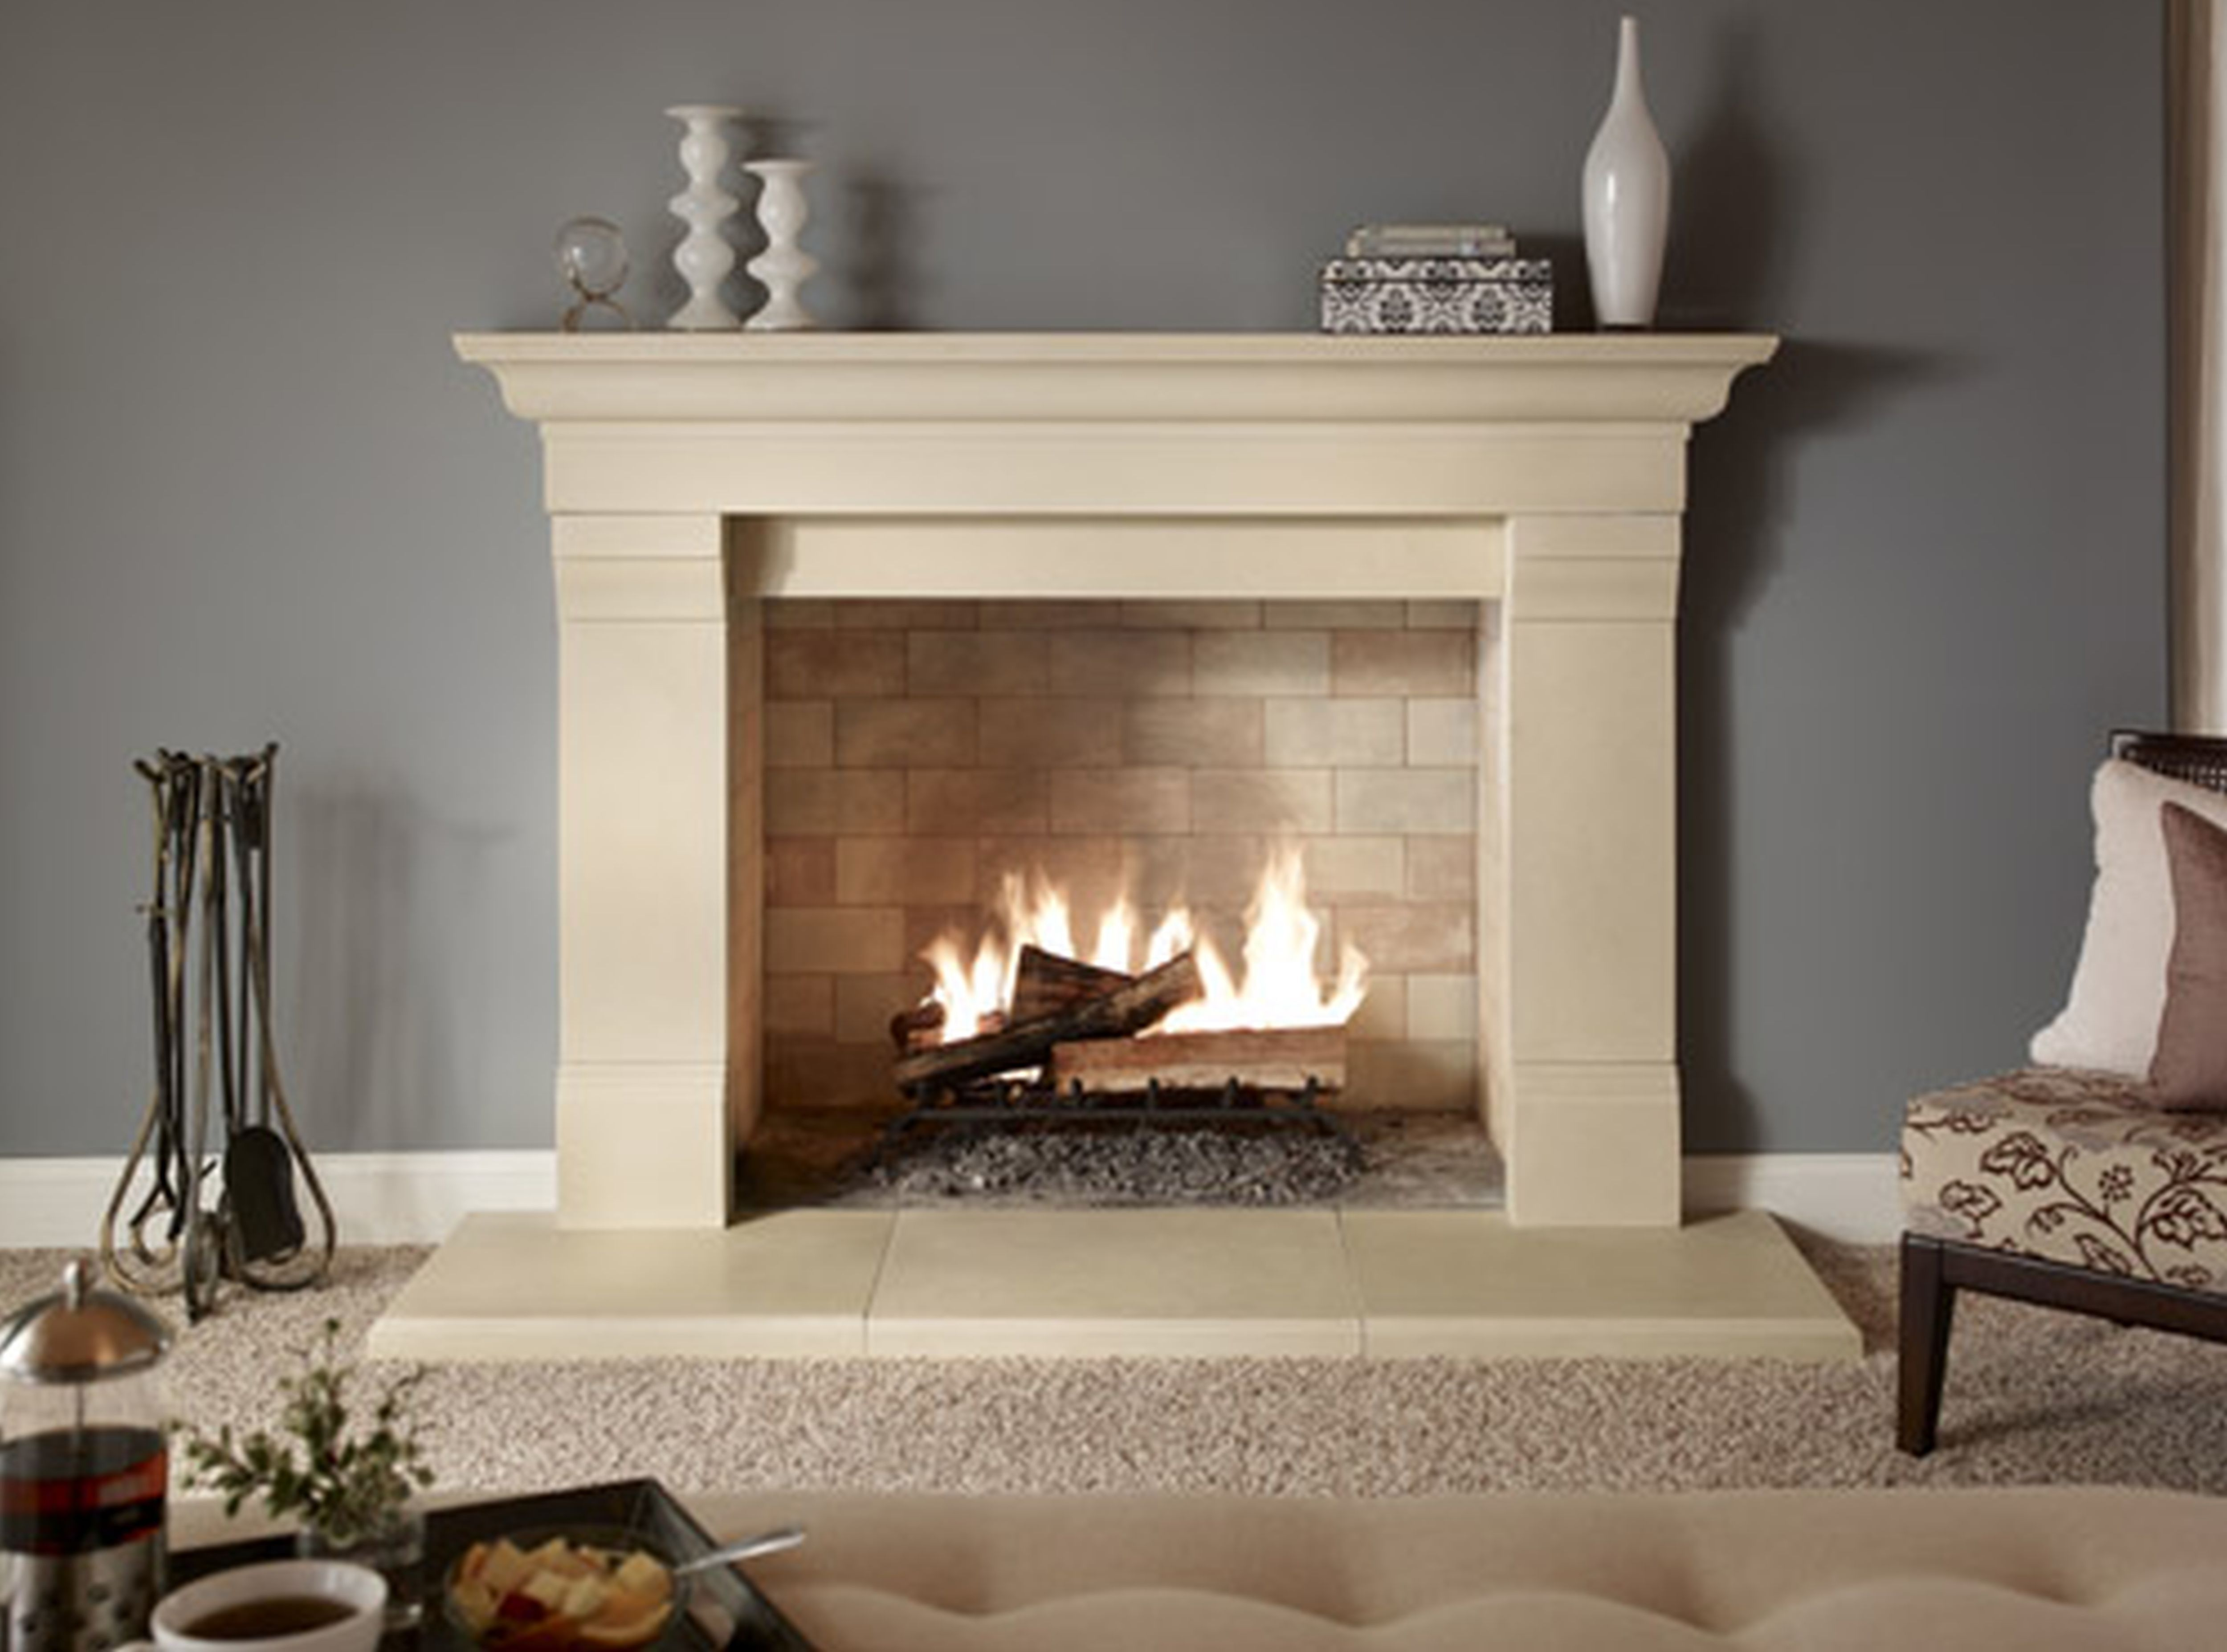 beige fireplace design come with brick wall firebox and modern mantel shelf also beige pillar for